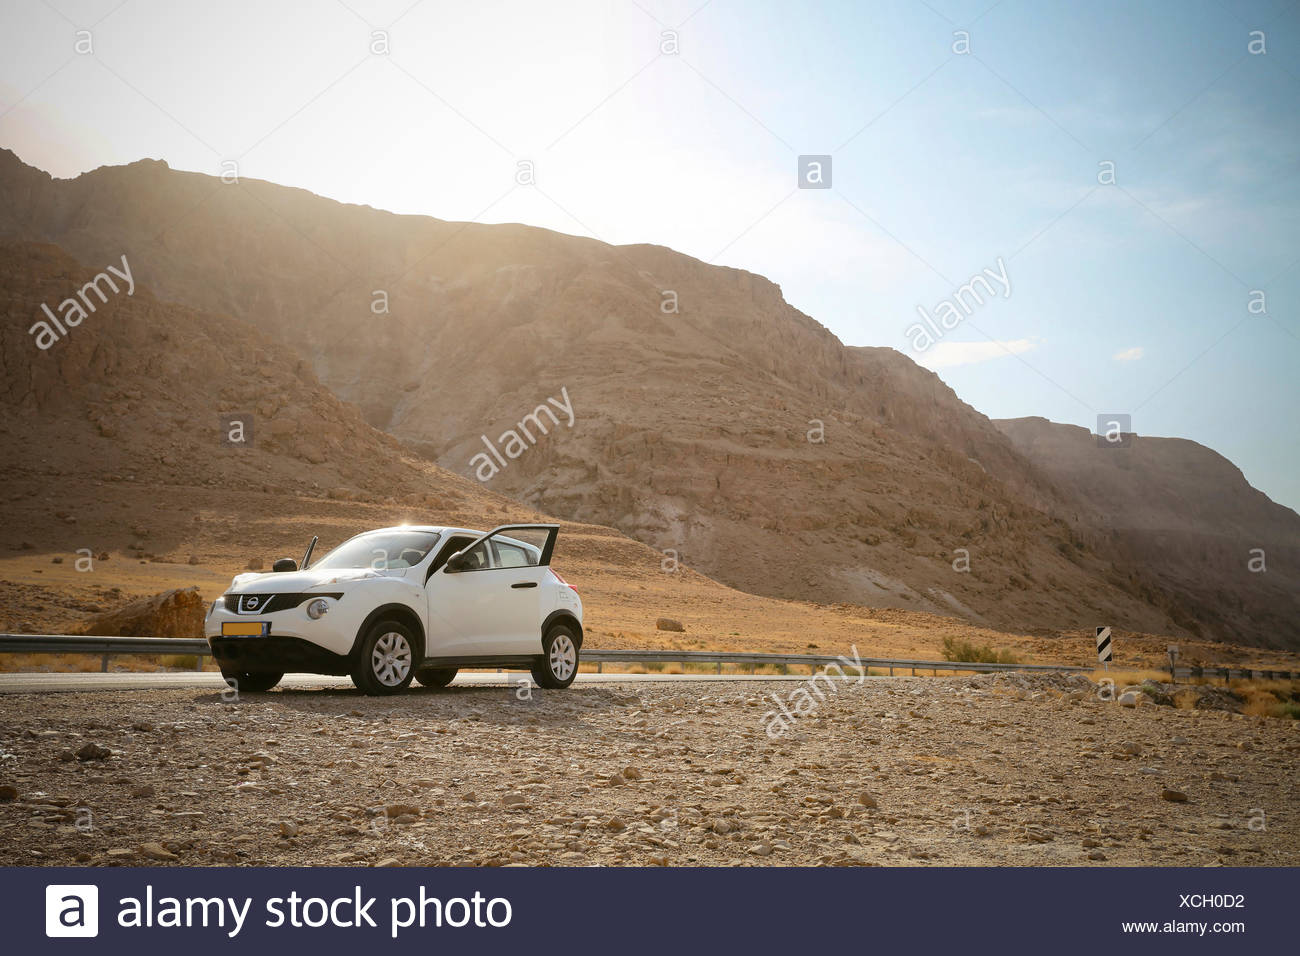 Isreal, parked car at the roadside in the desert near Dead Sea - Stock Image